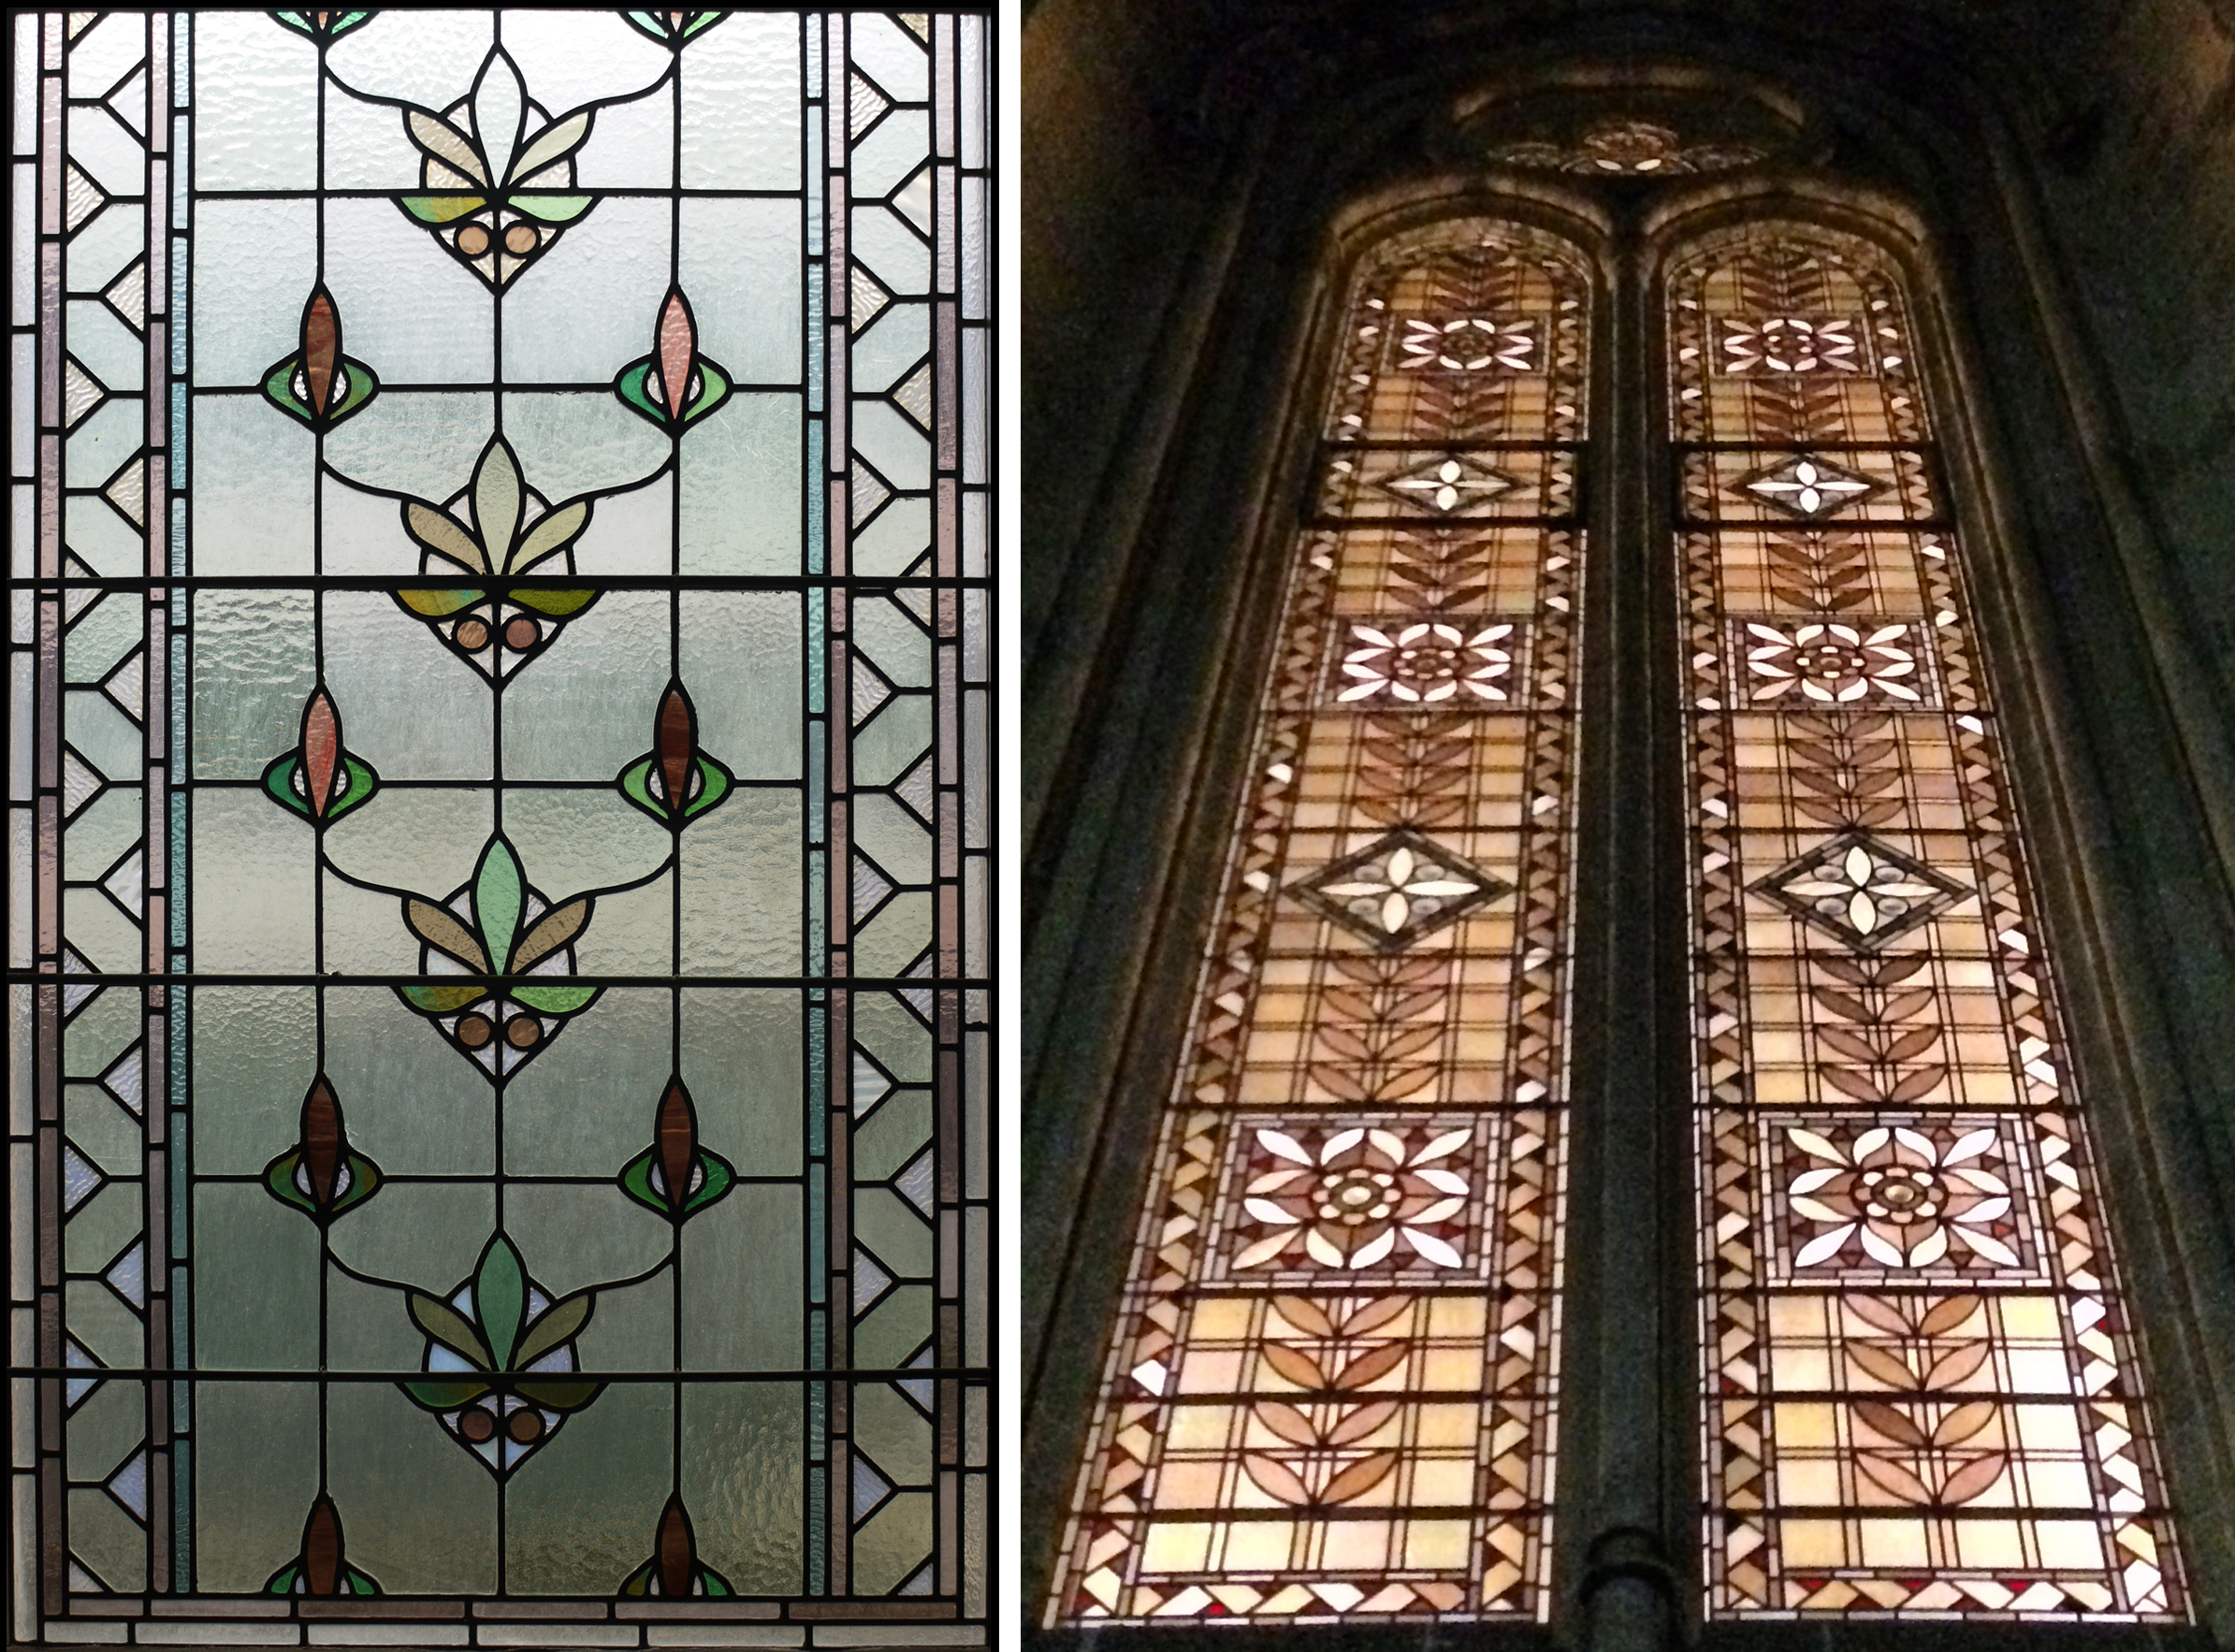 Leaded lights in Whitworth Hall, University of Manchester